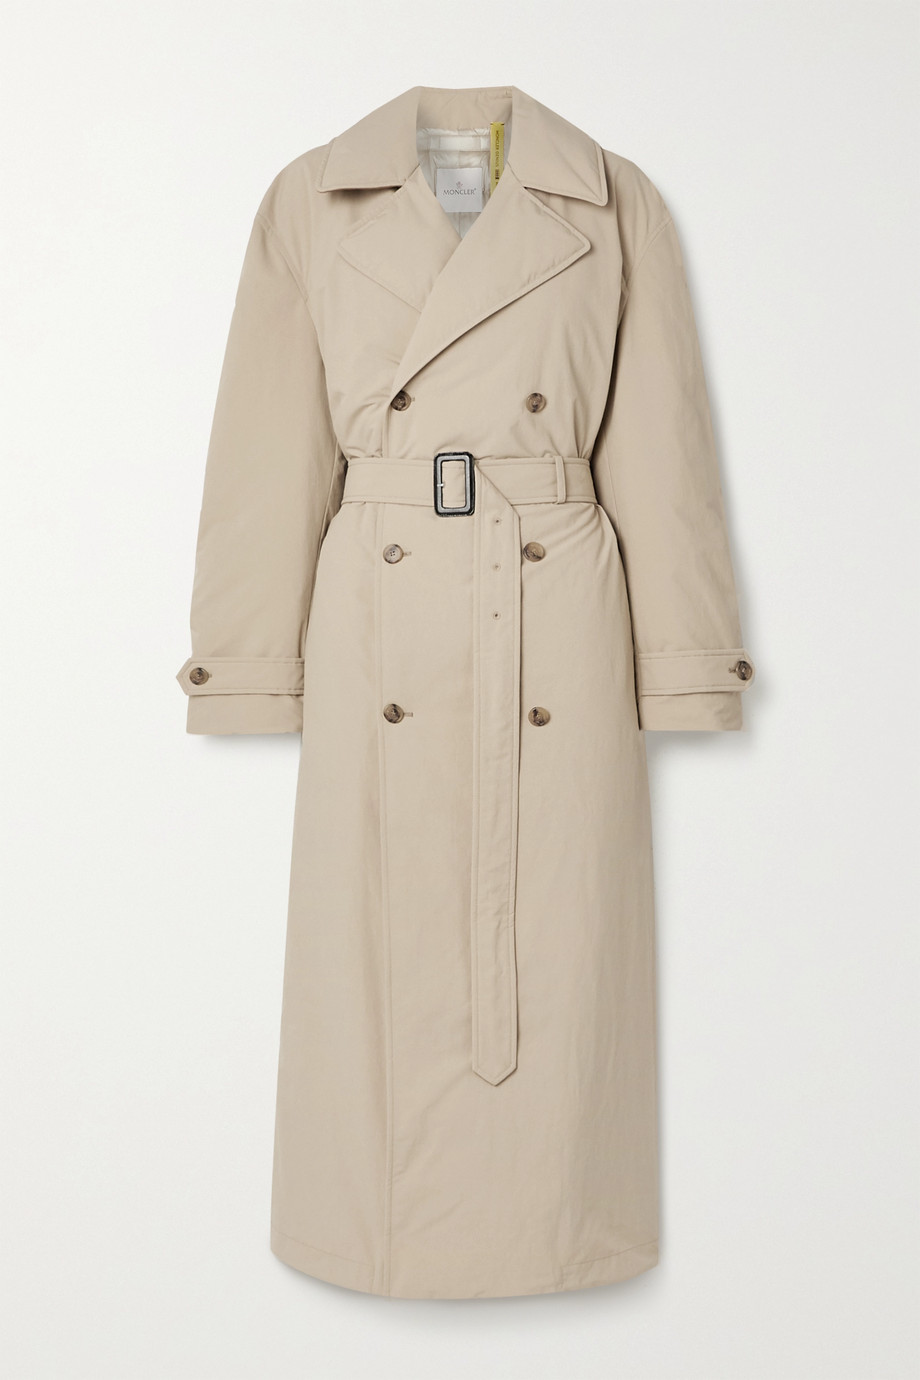 Moncler Genius + 1 JW Anderson Montacute padded shell down trench coat